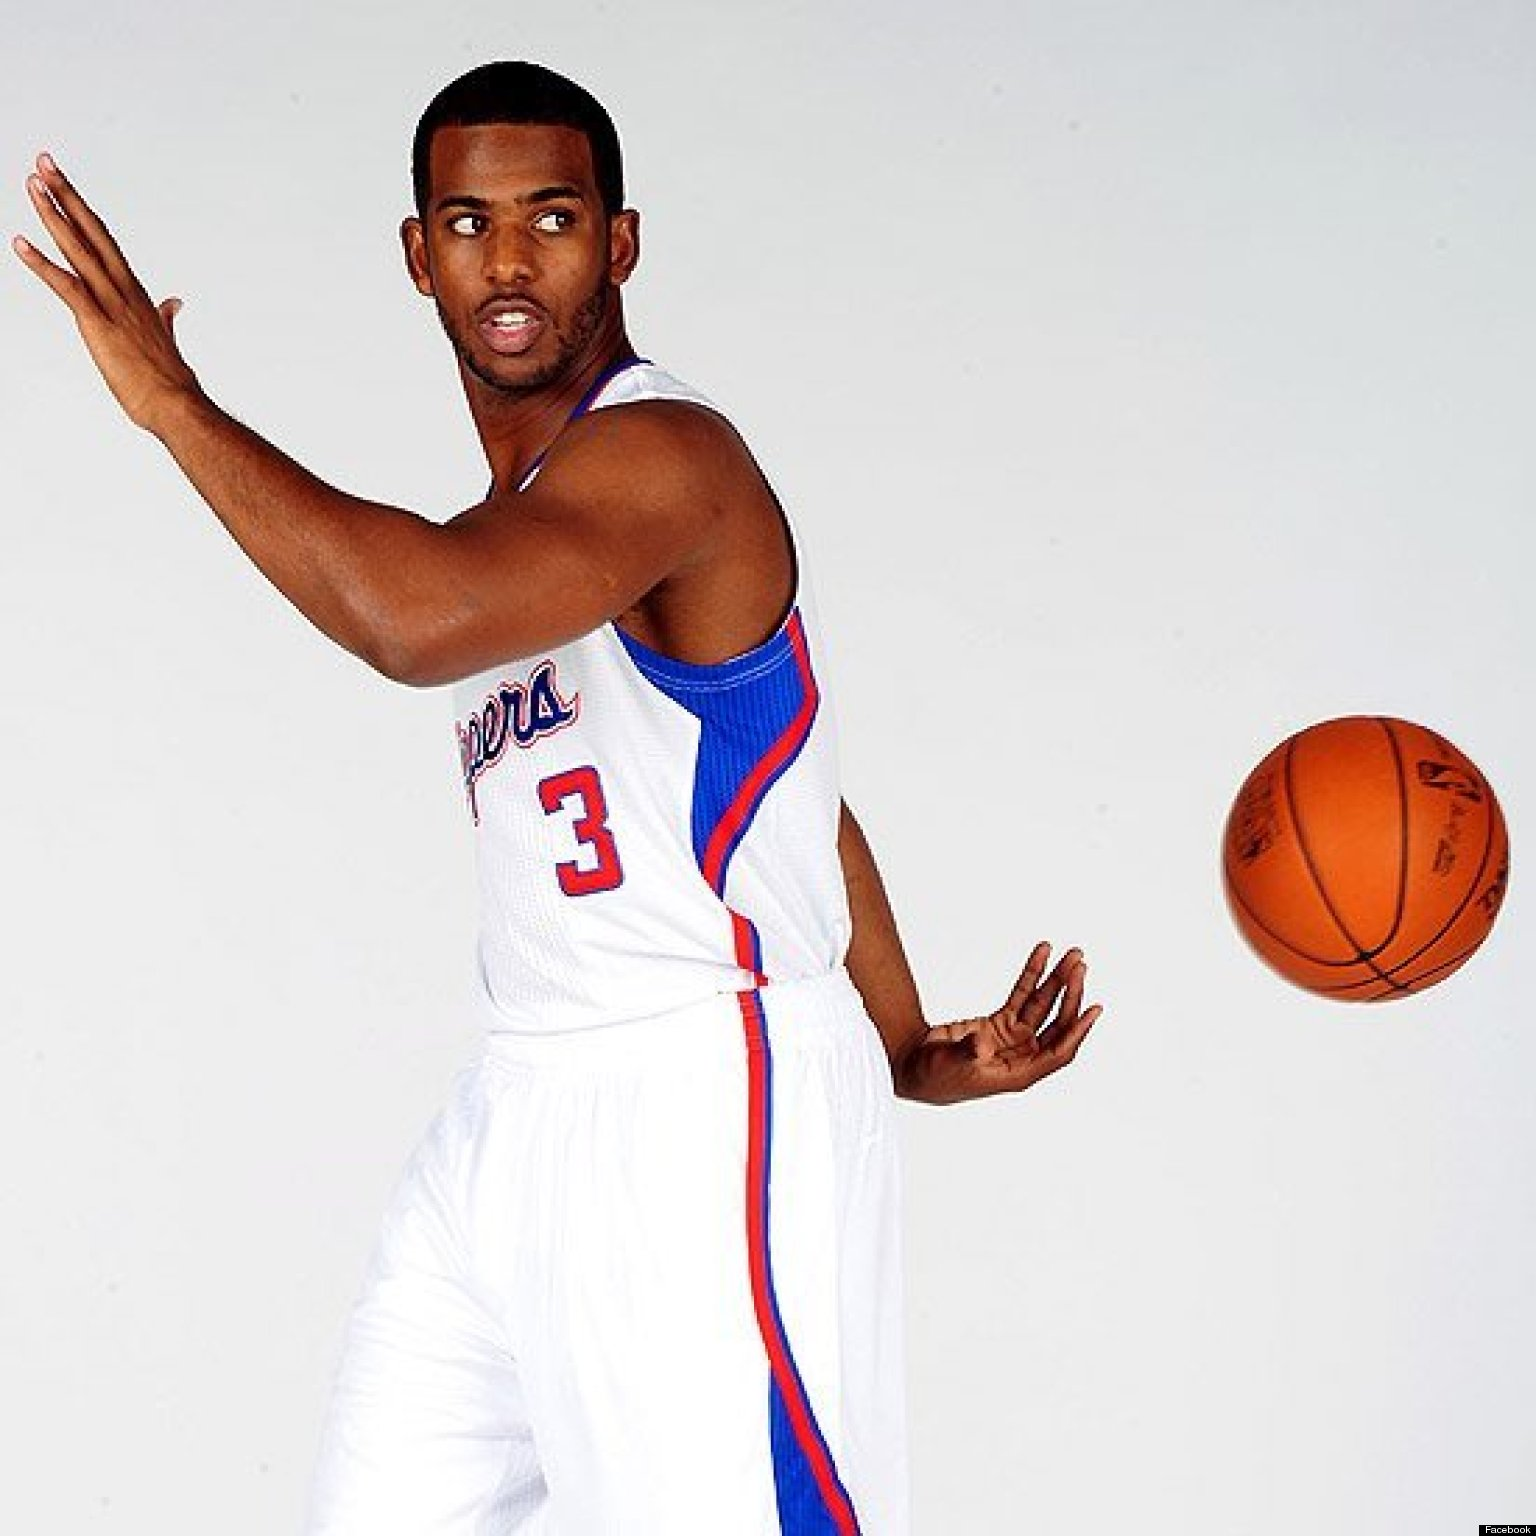 Chris Paul Clippers Move Has Been A Total Life Change PHOTOS